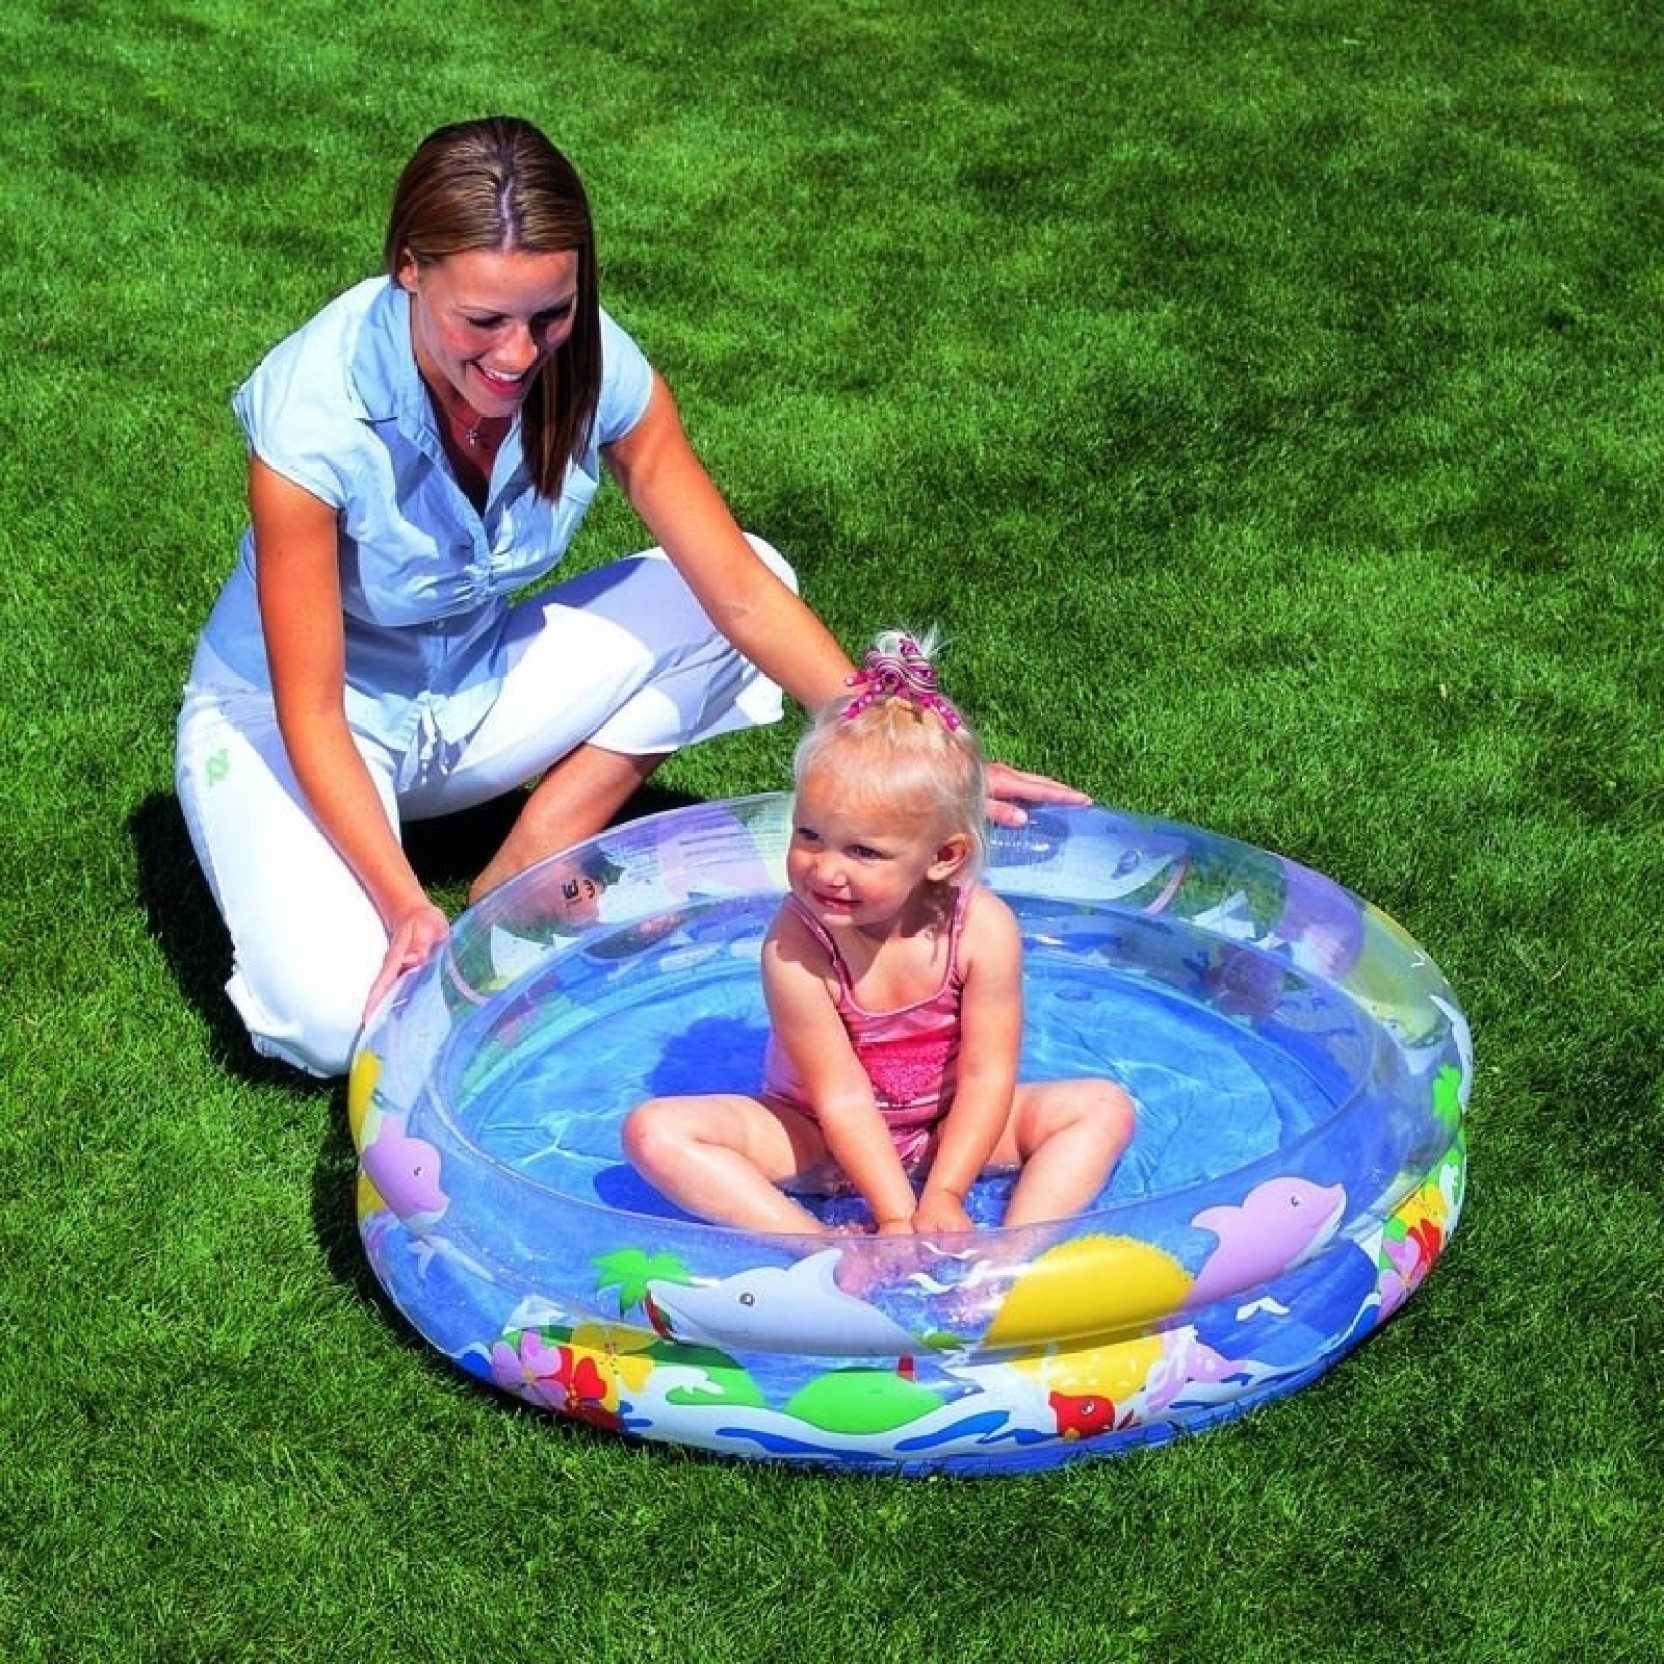 Best way transparent sea life pool transparent sea life for Best children s paddling pool